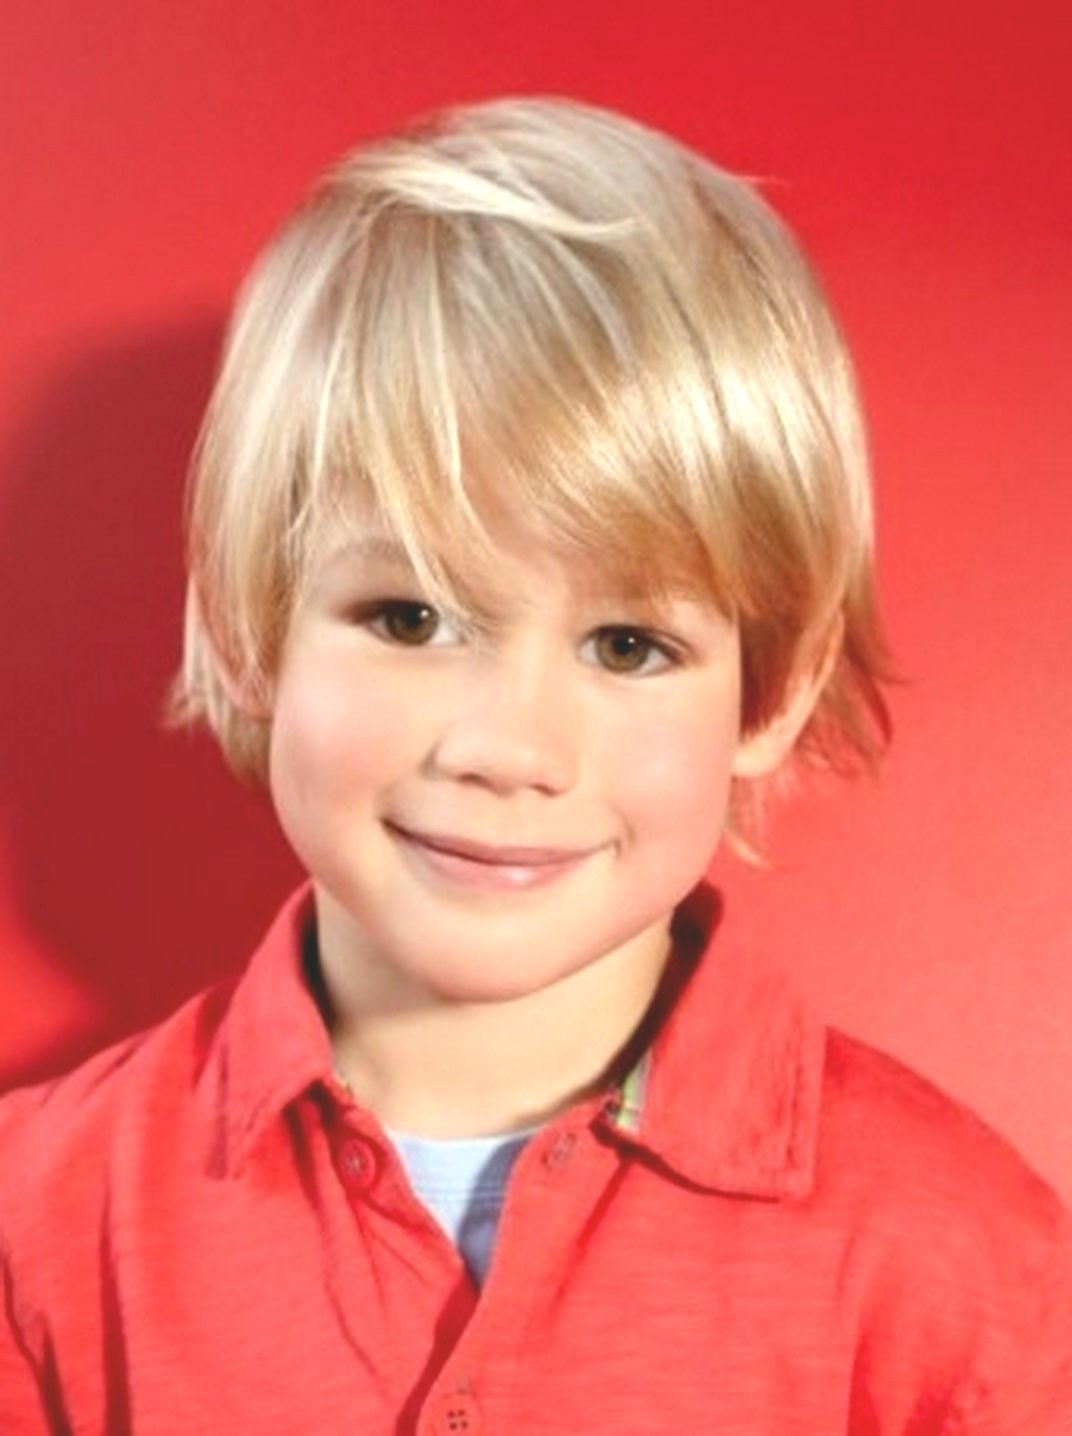 fancy hairstyle toddler boy gallery lovely hairstyle toddler boy design